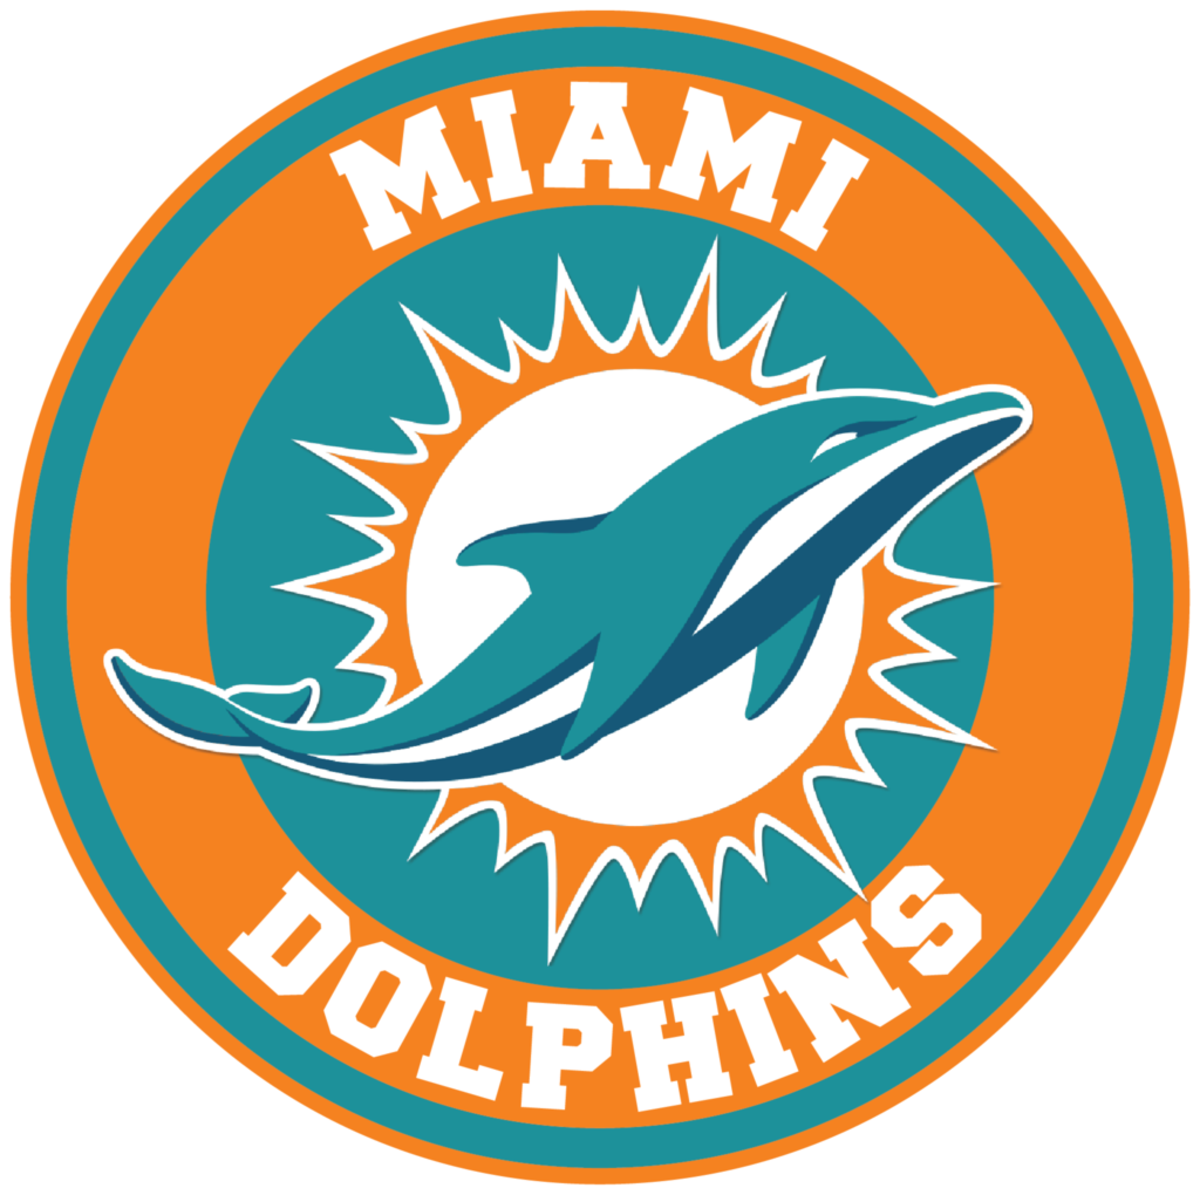 In 1974, the Miami Dolphins were the Super Bowl champs.